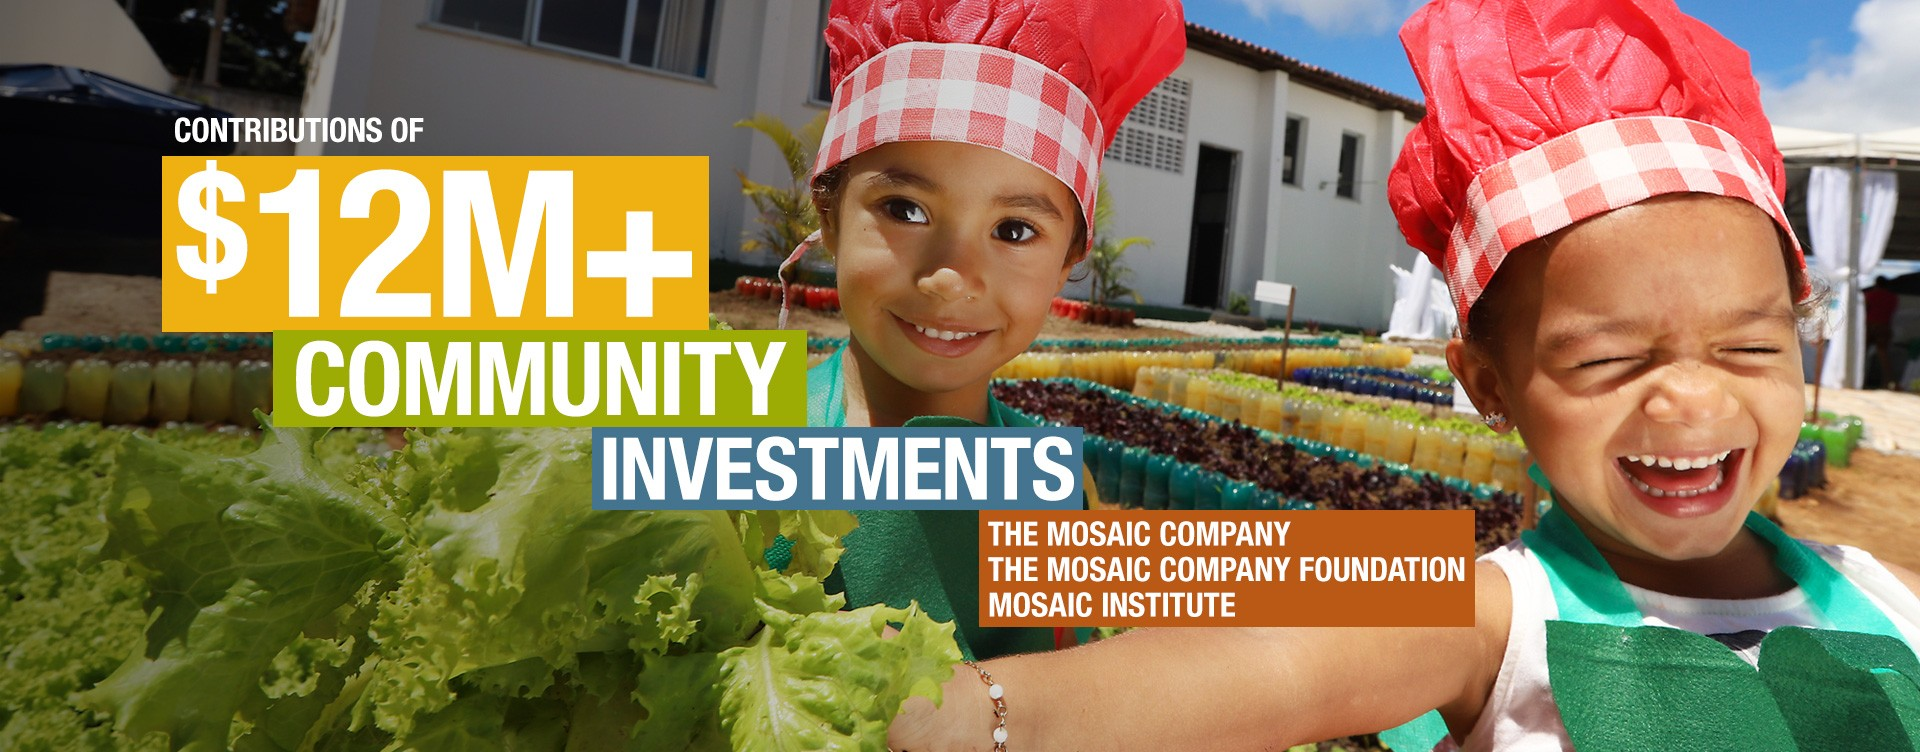 $12M community investments